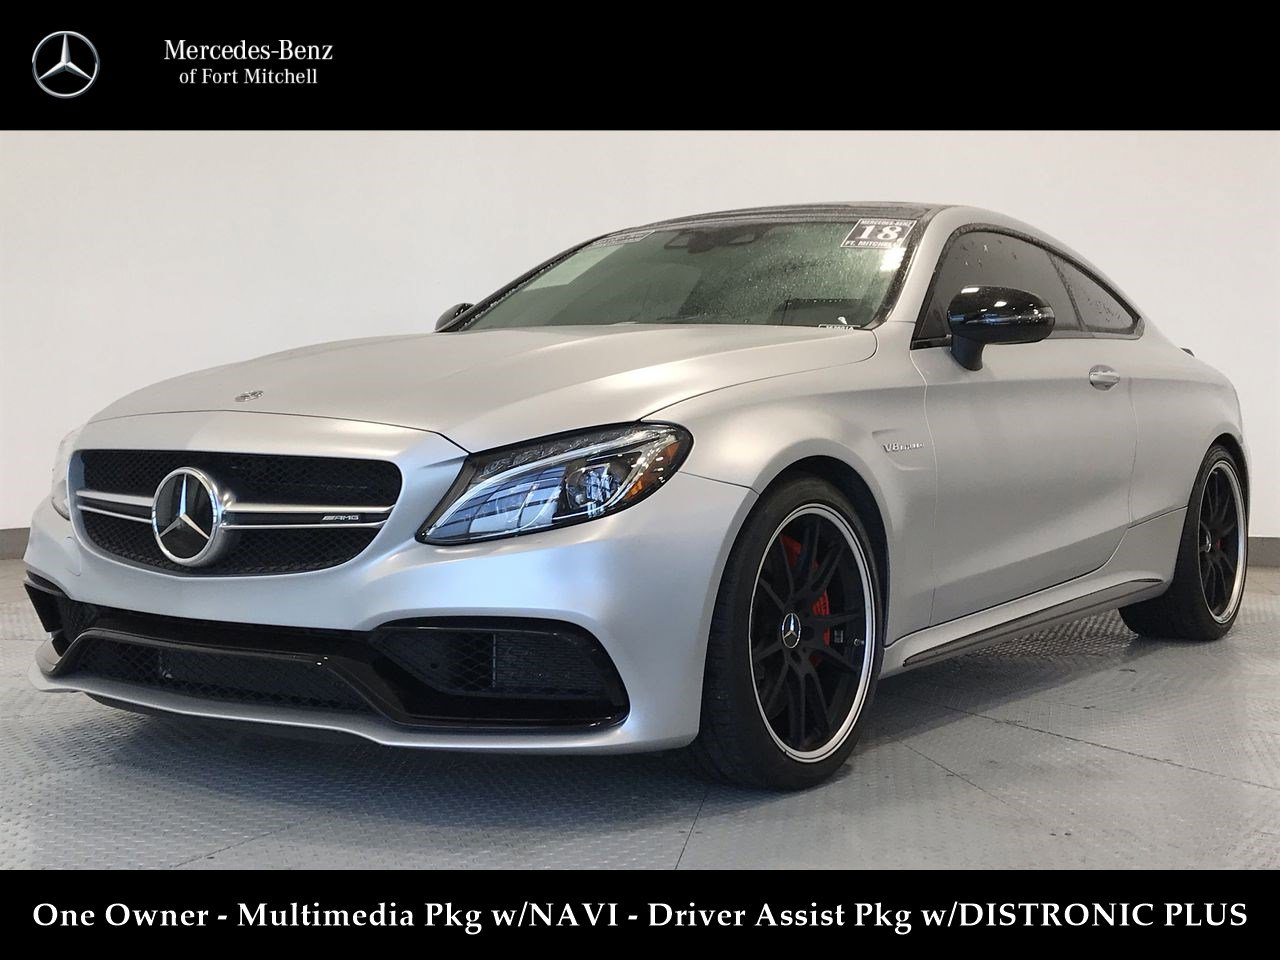 2018 Mercedes-Benz C 63 AMG S Coupe image